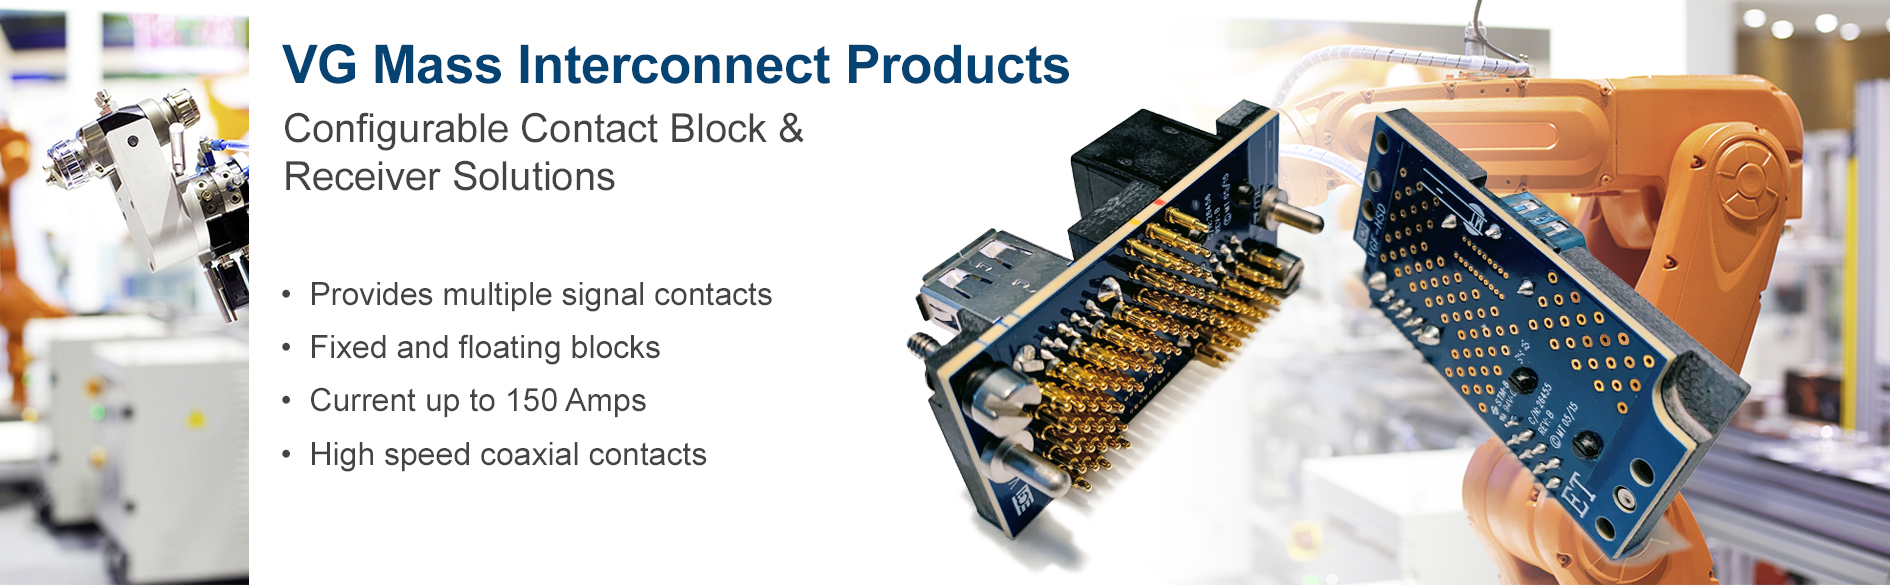 Click to learn more about VG Mass Interconnect products